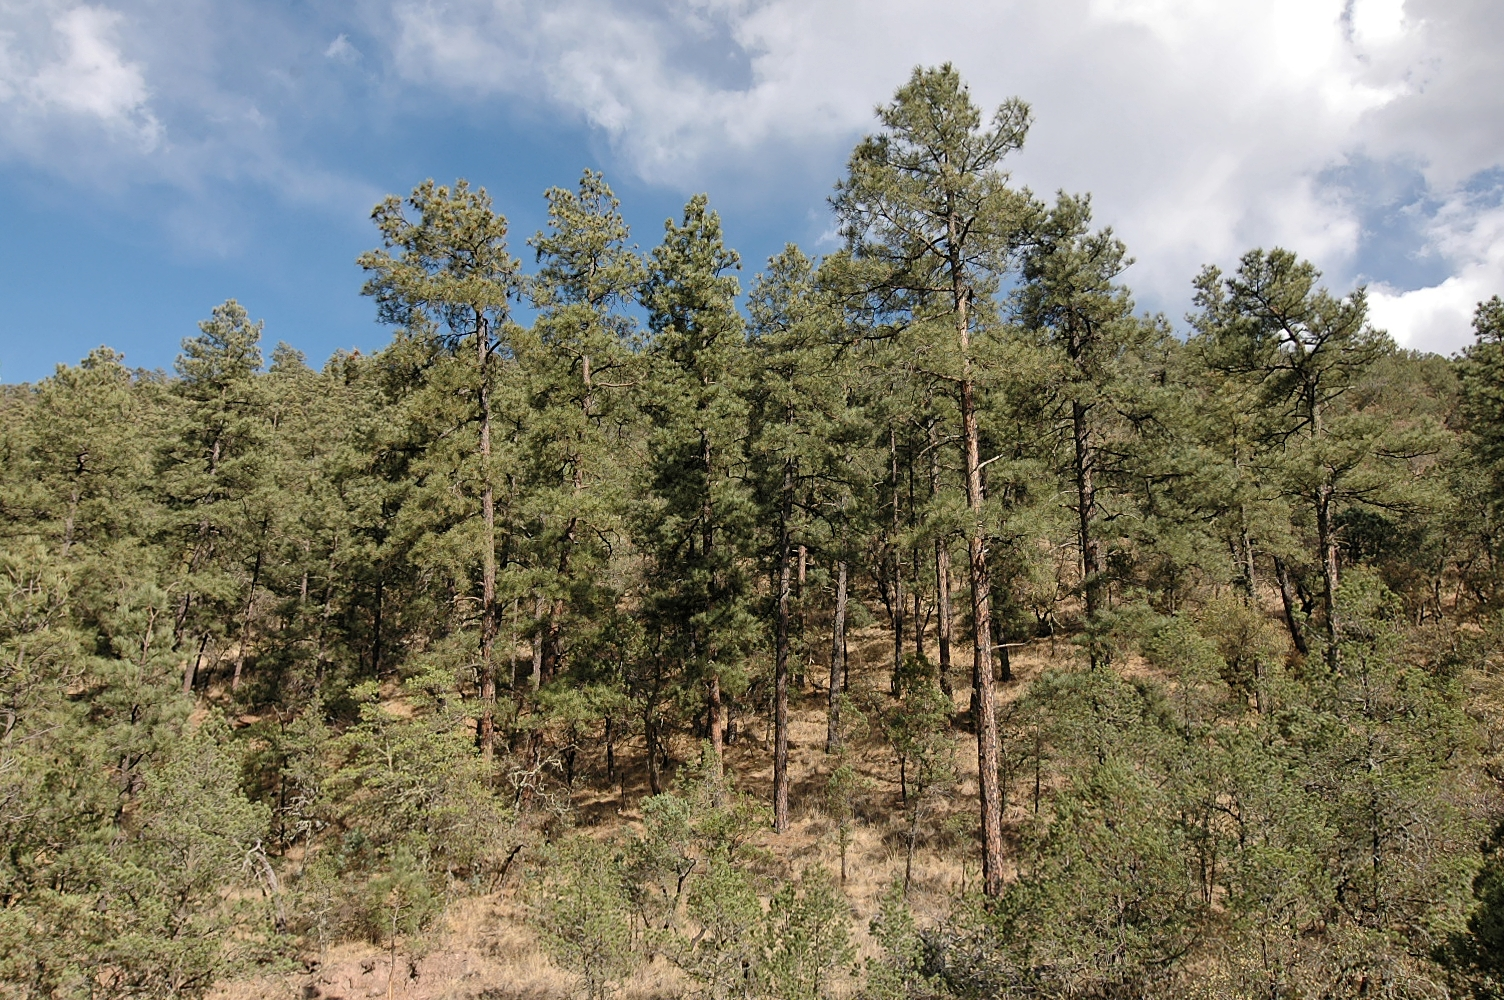 <p>Texas A&amp;M Forest Service is helping restore the threatened, iconic Ponderosa Pine forests of West Texas. After a myriad of environmental stresses destroyed nearly 75